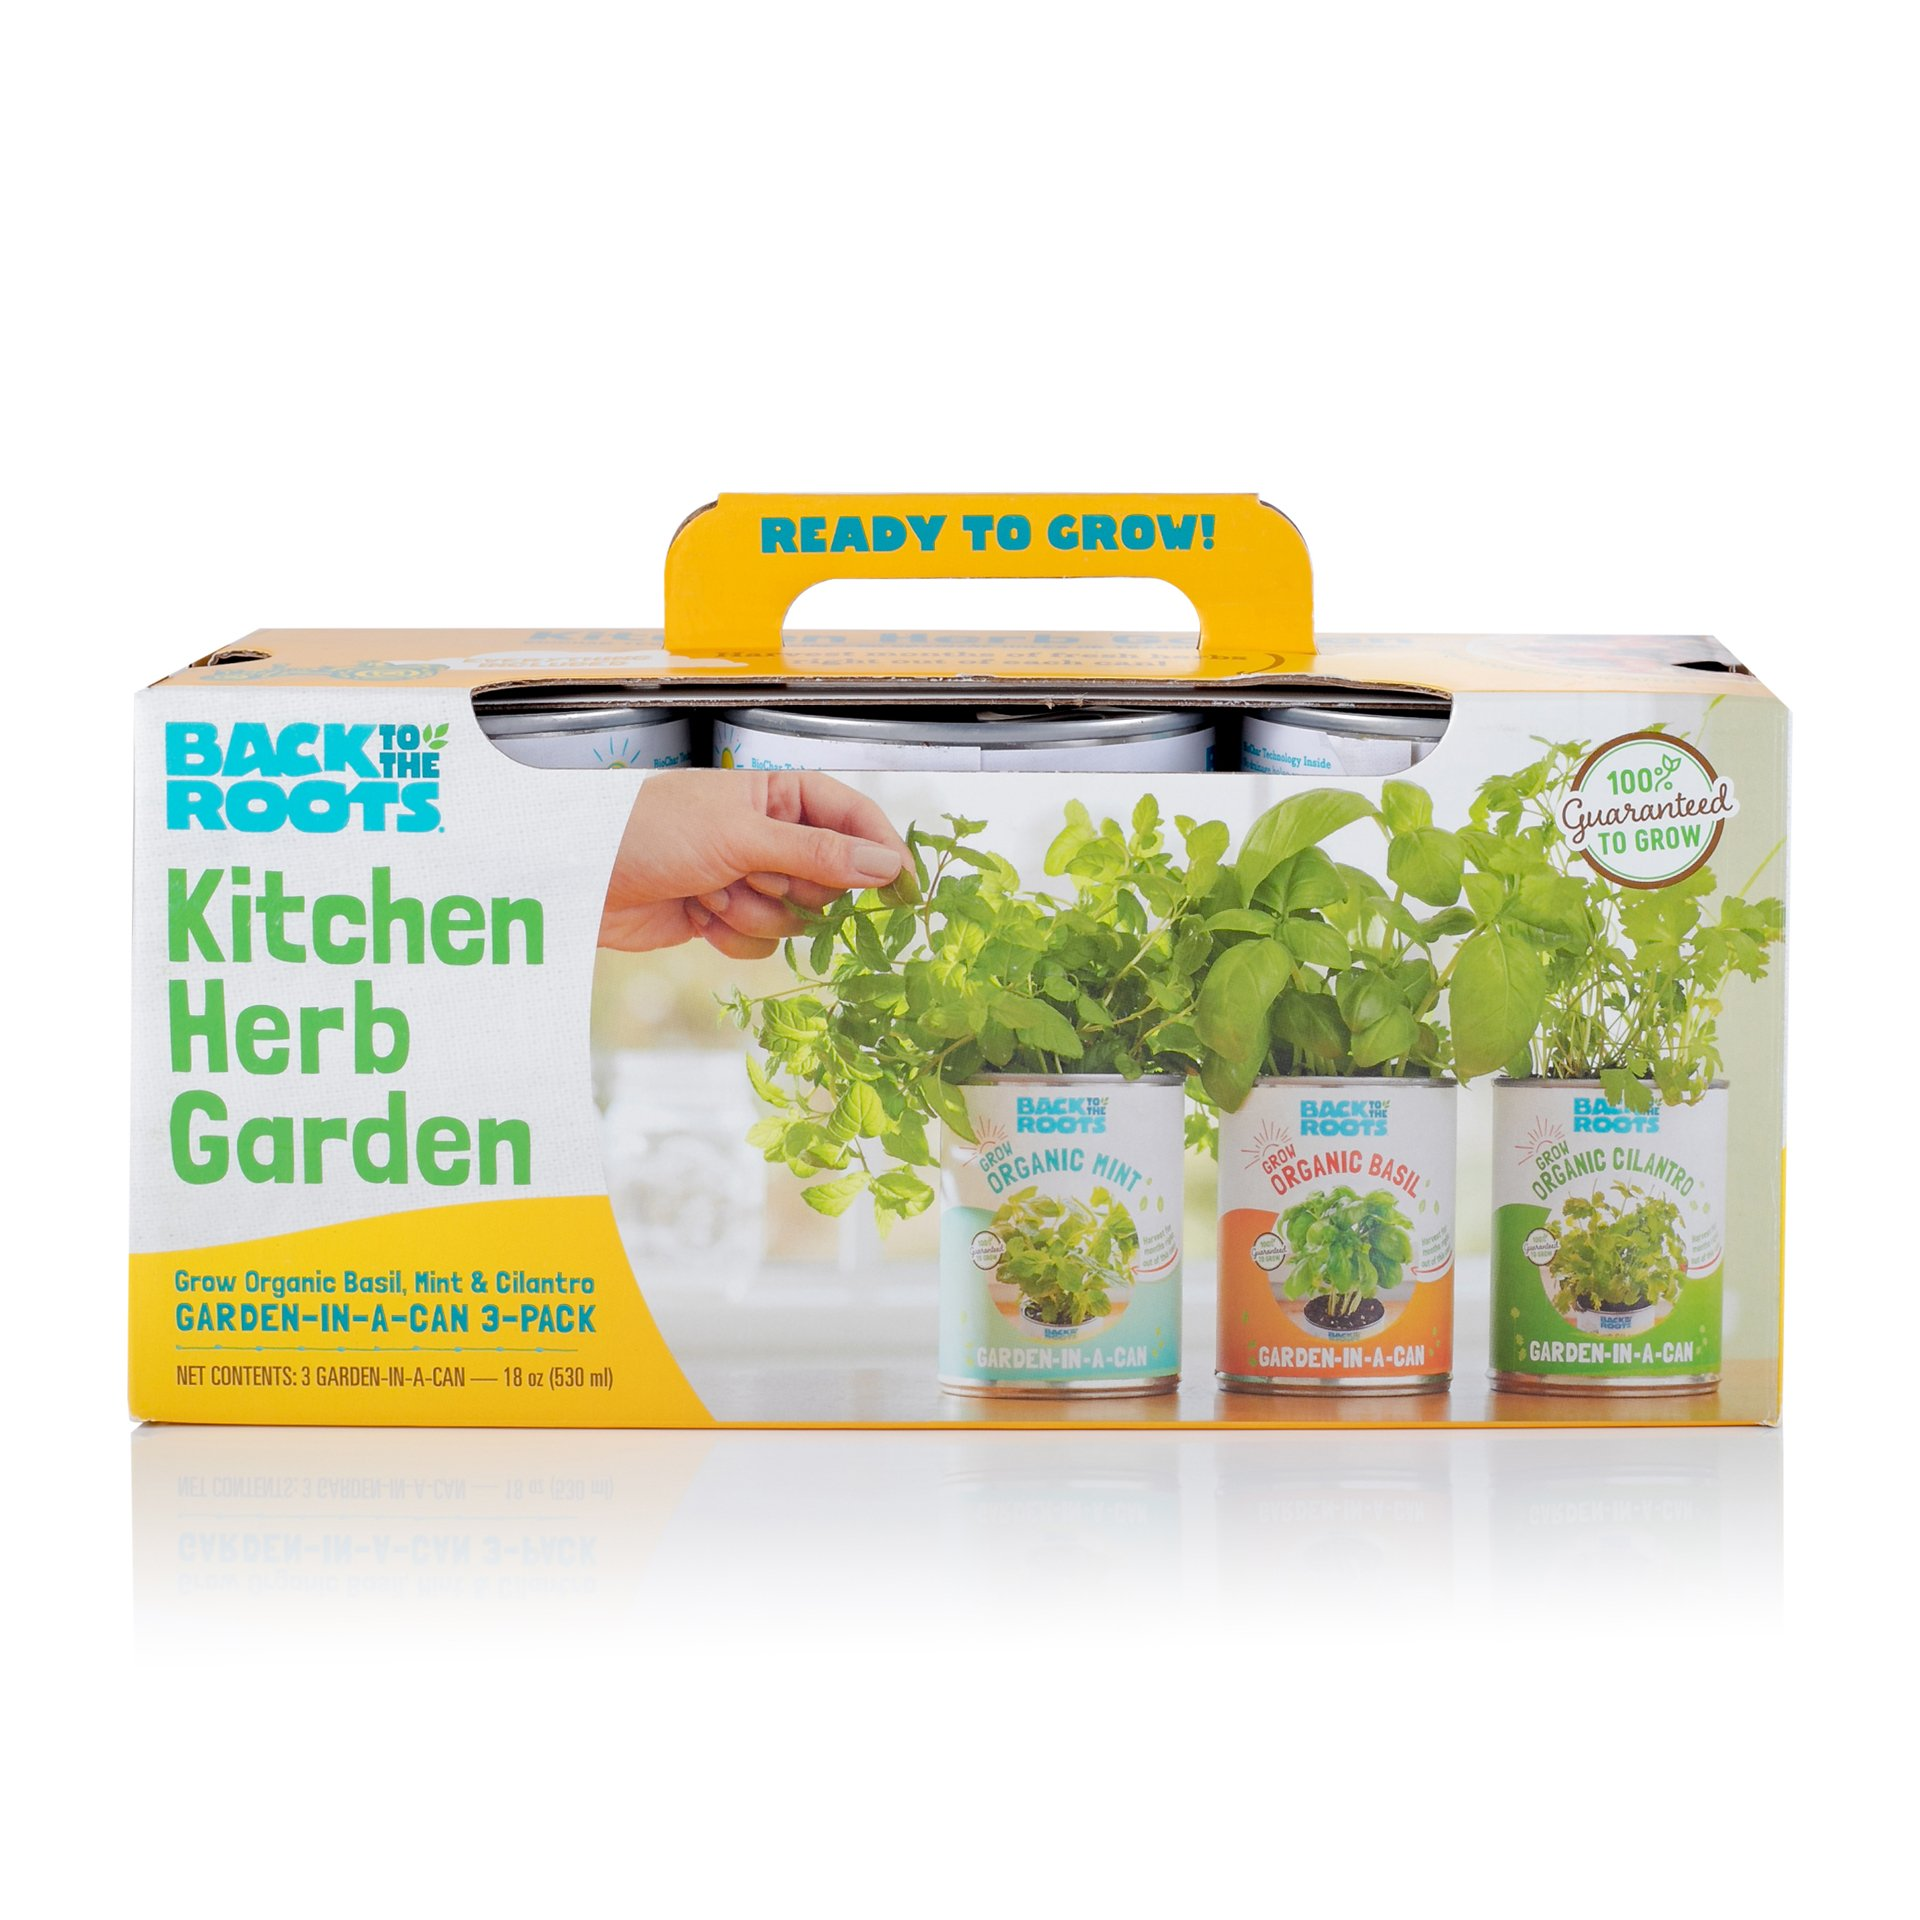 Back to The Roots Garden-in-a-Can Kitchen Herb Garden 3 Pack Variety Basil/Cilantro/Mint. DIY Indoor Organic Herb Growing Kit Grow Edible Herbs in Your Home Perfect Cooking Gift by Back to the Roots